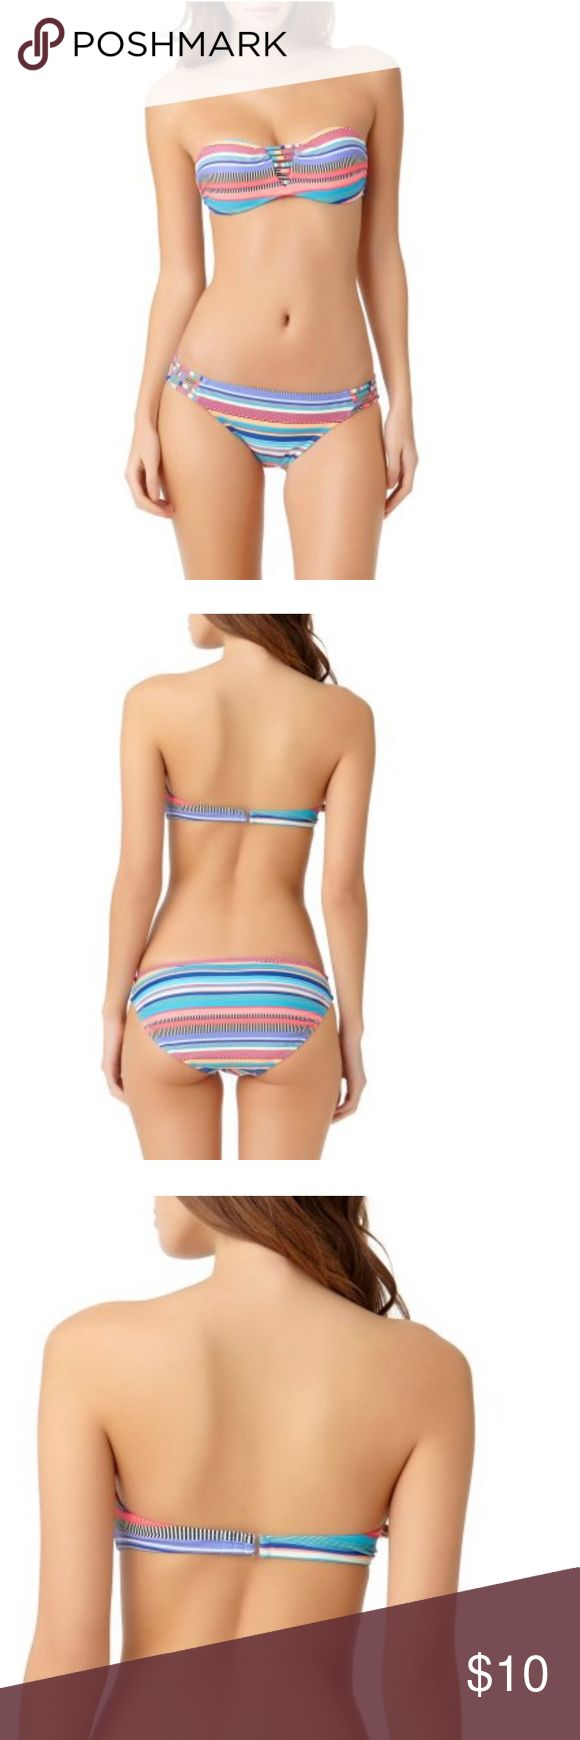 Juniors bikini separates Take in the sun with NOBO juniors print bikini tops and bottoms. You can match the tops and bottoms or pair with other NOBO separates (sold separately), allowing you to step out this summer looking amazing. Comfortable fit made of nylon to make it light and durable, as well as spandex for flexible mobility.  Nylon Spandex Blend Molded Pushup Cups Halter ties at neck and back Print nobo Swim Bikinis